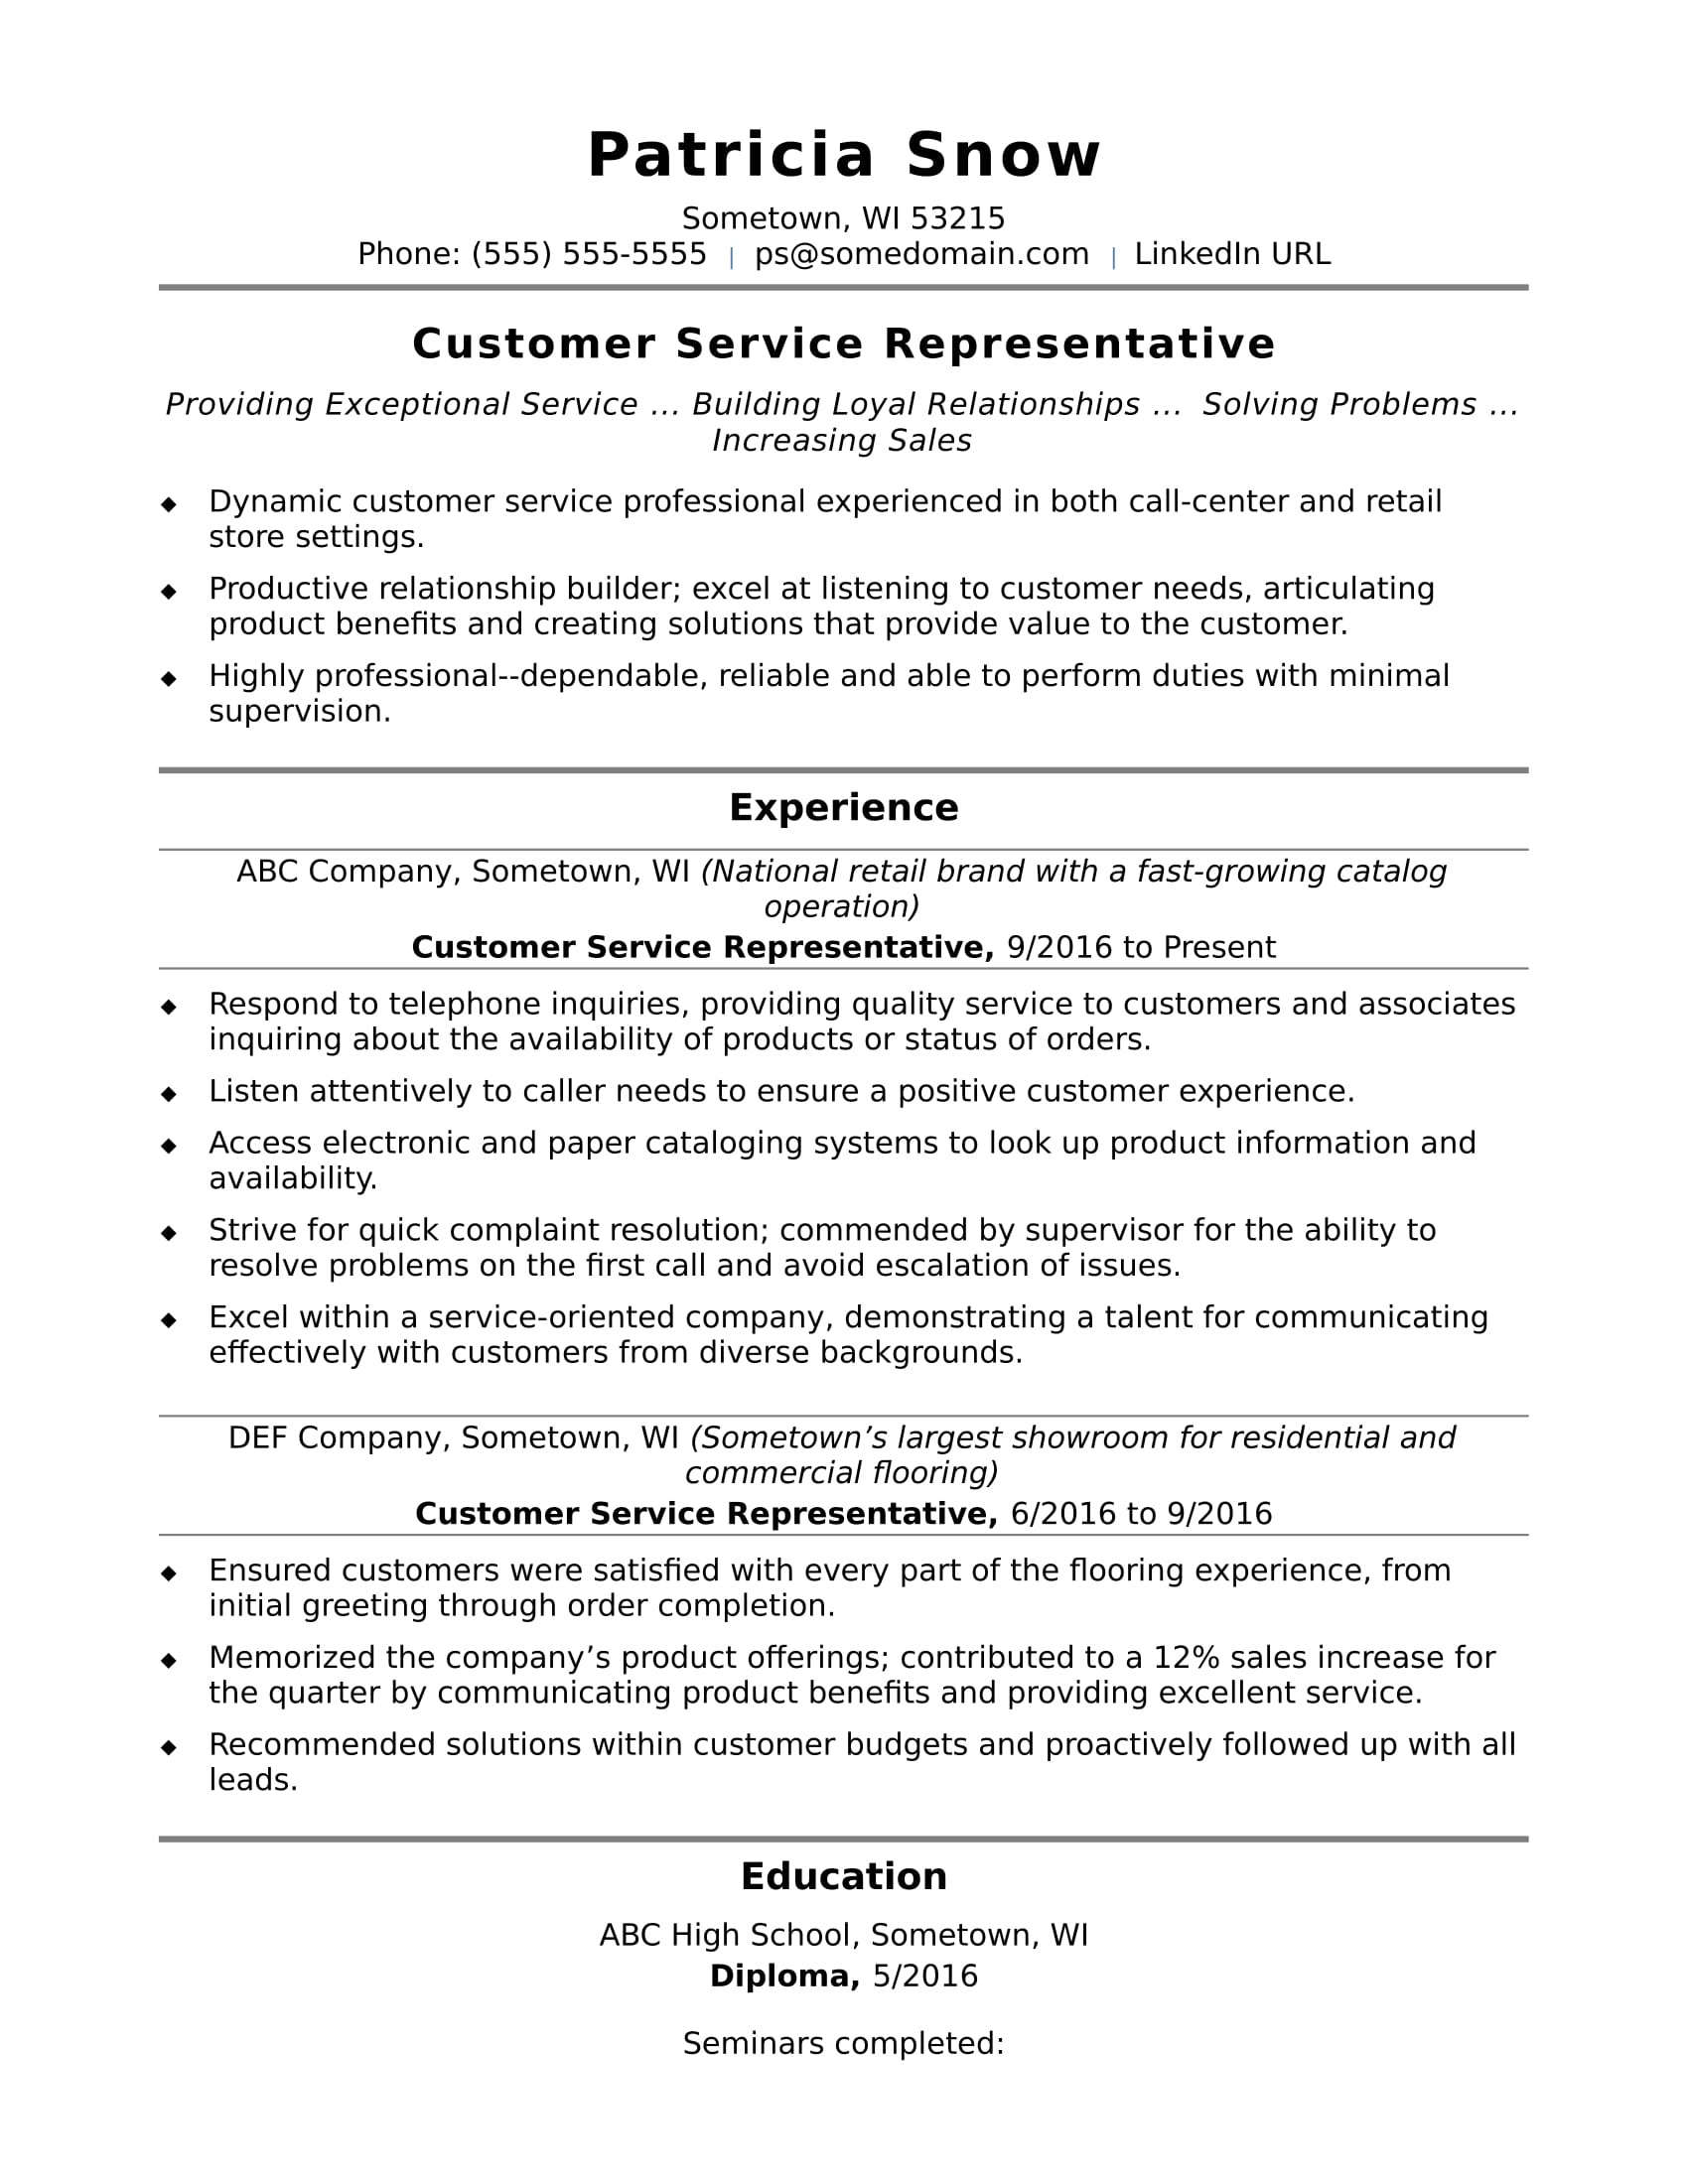 customer service representative resume sample - Sample Resume Skills For Customer Service